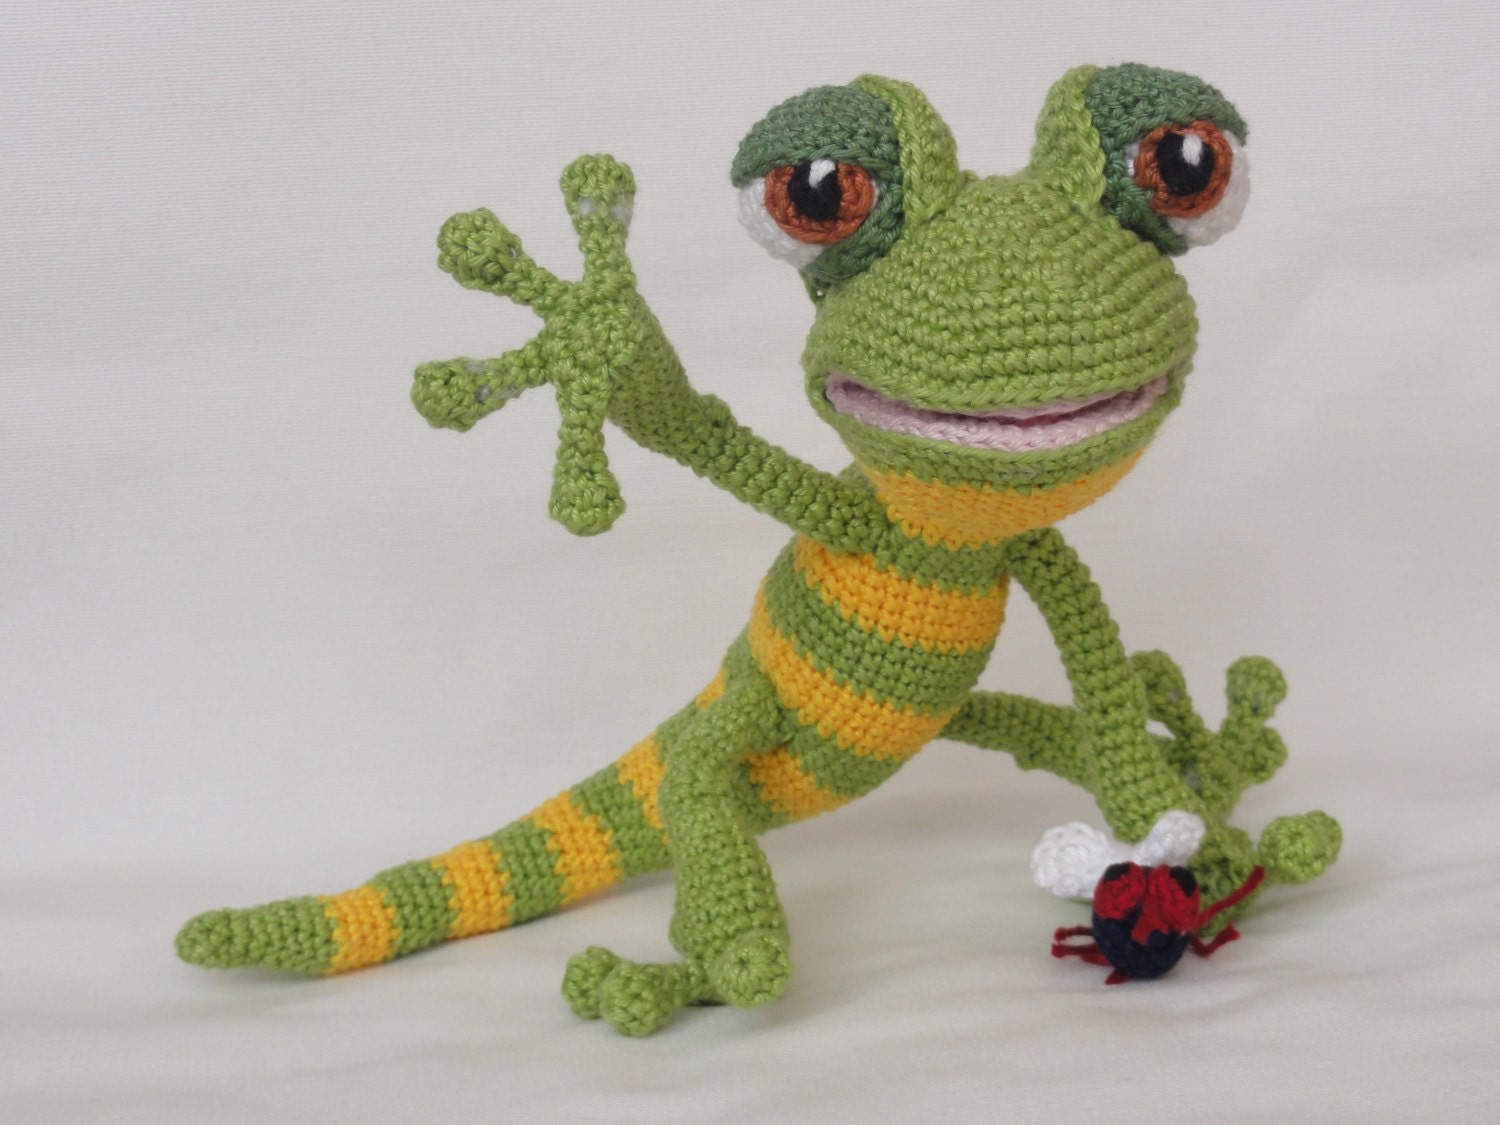 Amigurumi Crochet Pattern Giorgio the Gecko English